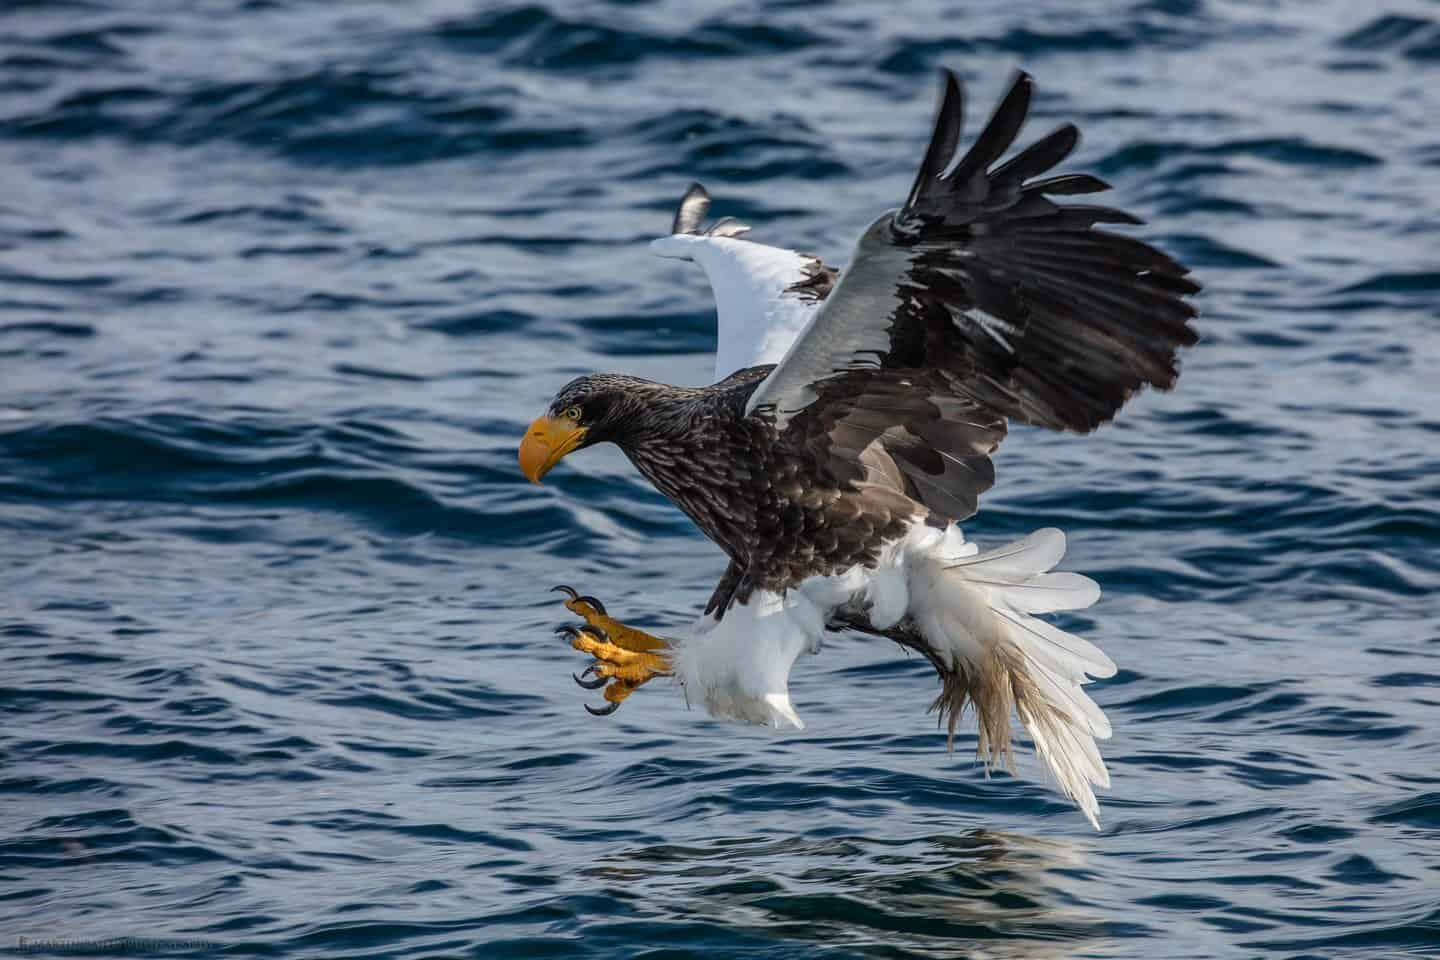 Steller's Sea Eagle Swooping to Catch Fish Talons Forward